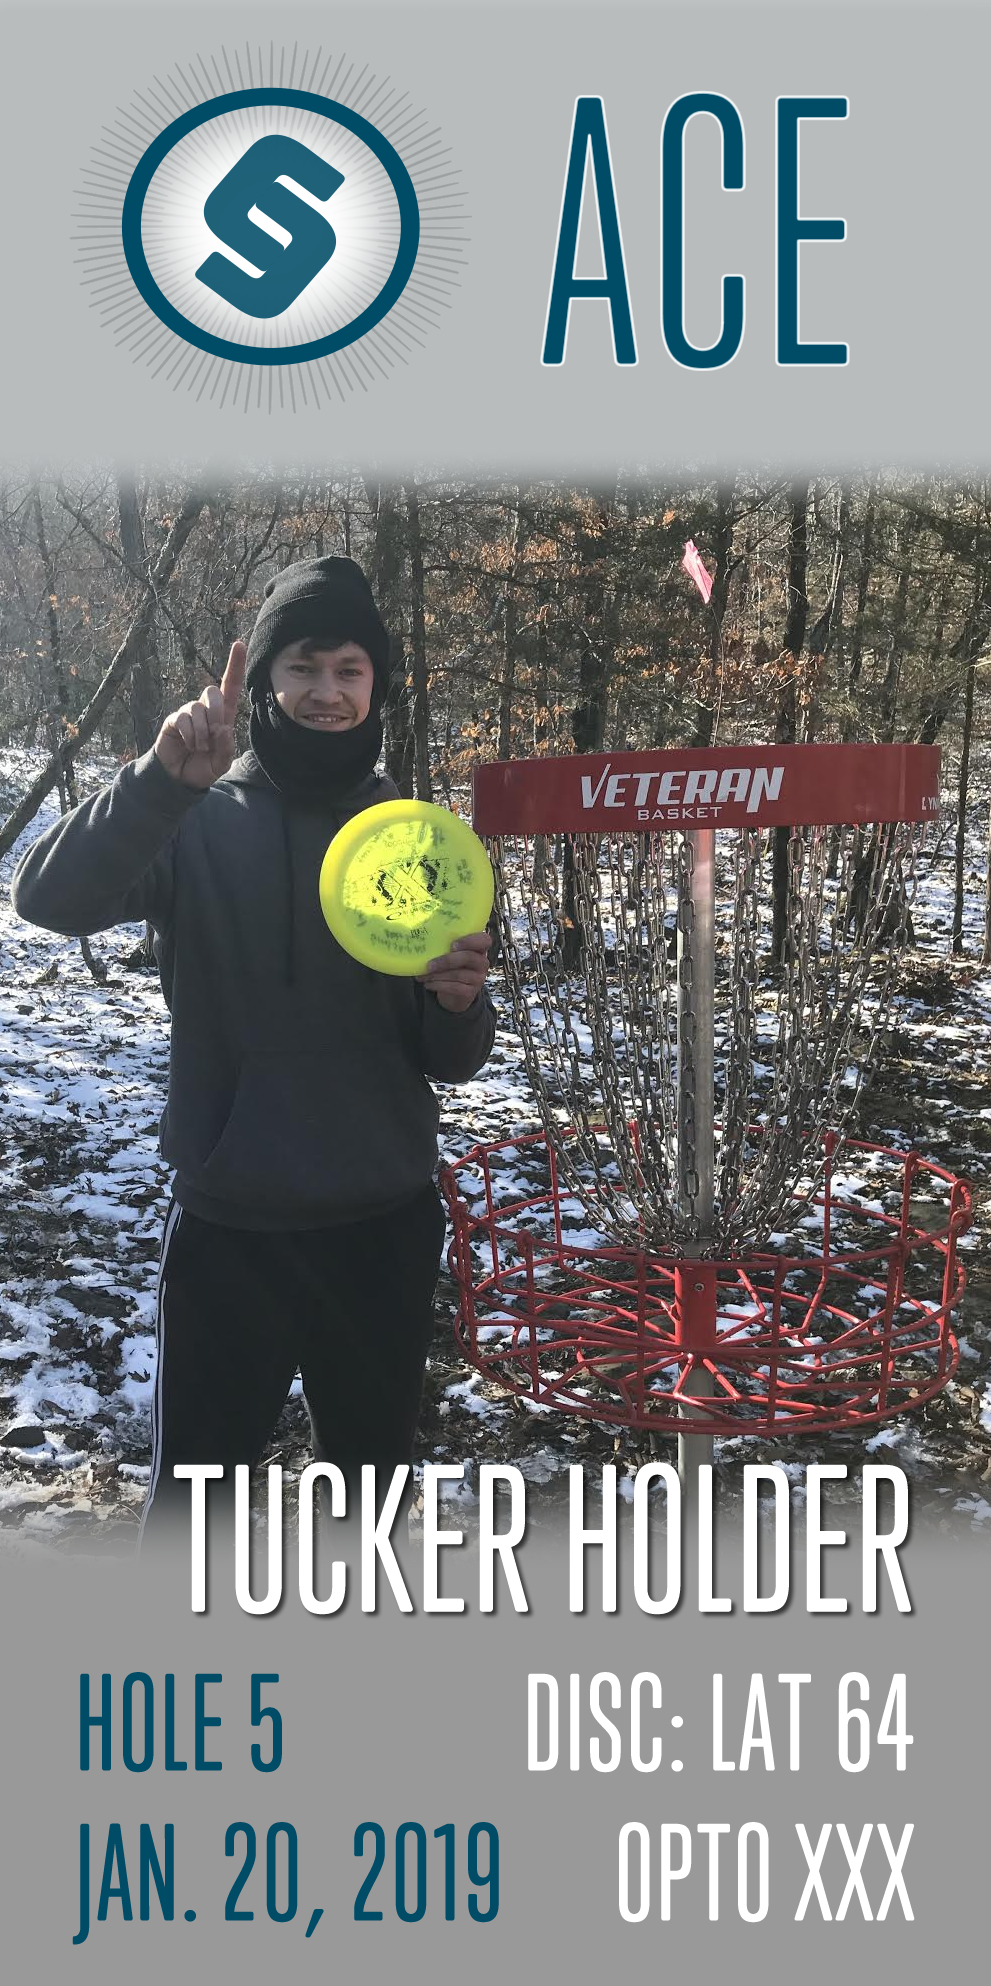 TUCKER HOLDER 1.20.19.png